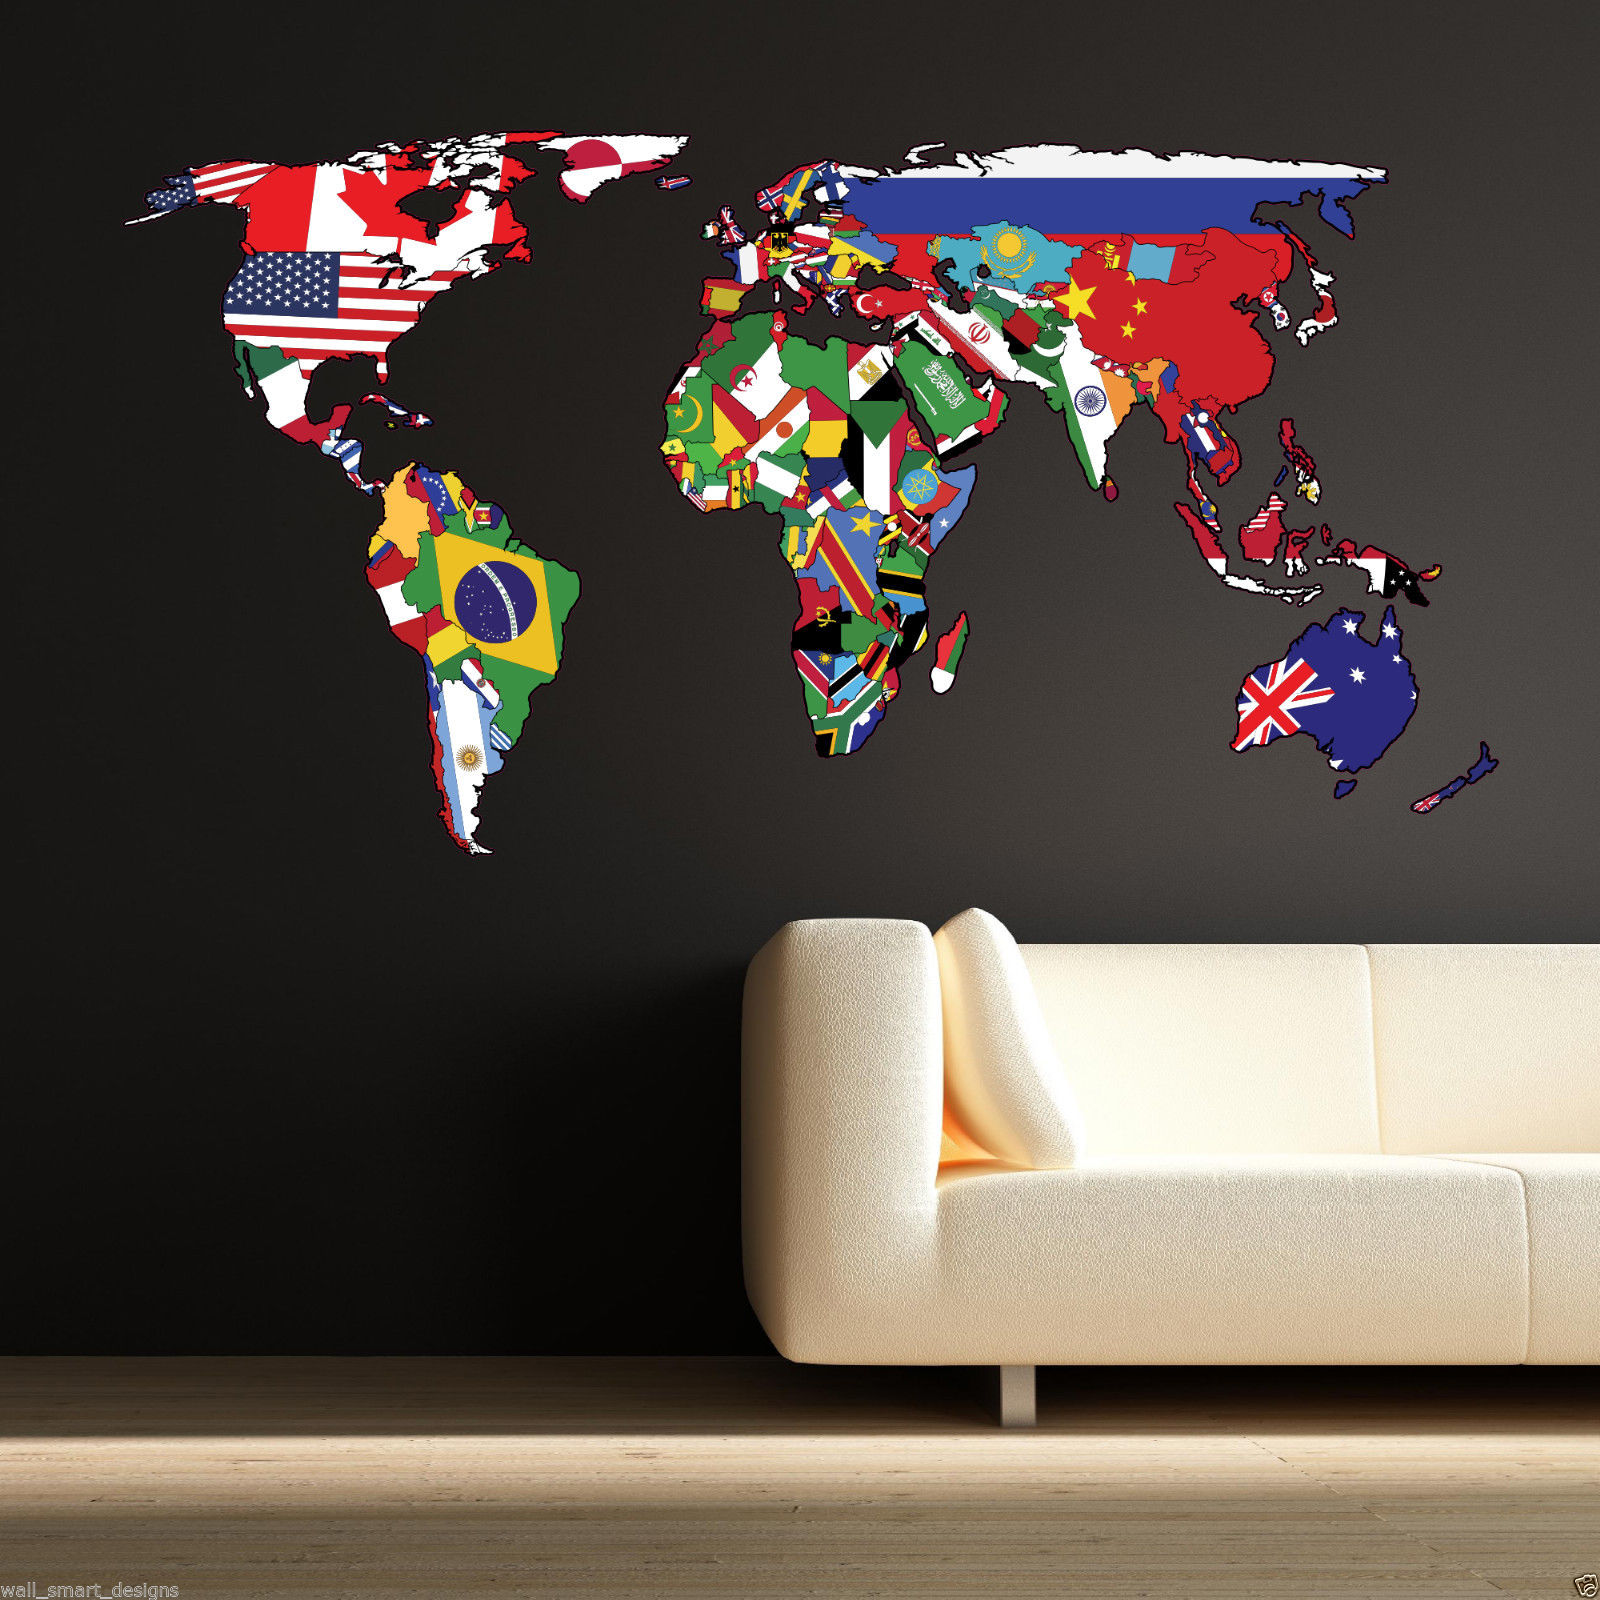 Thompsons ltd full colour world map atlas office bedroom wall art full colour world map atlas office bedroom wall art sticker decal mural transfer gumiabroncs Image collections